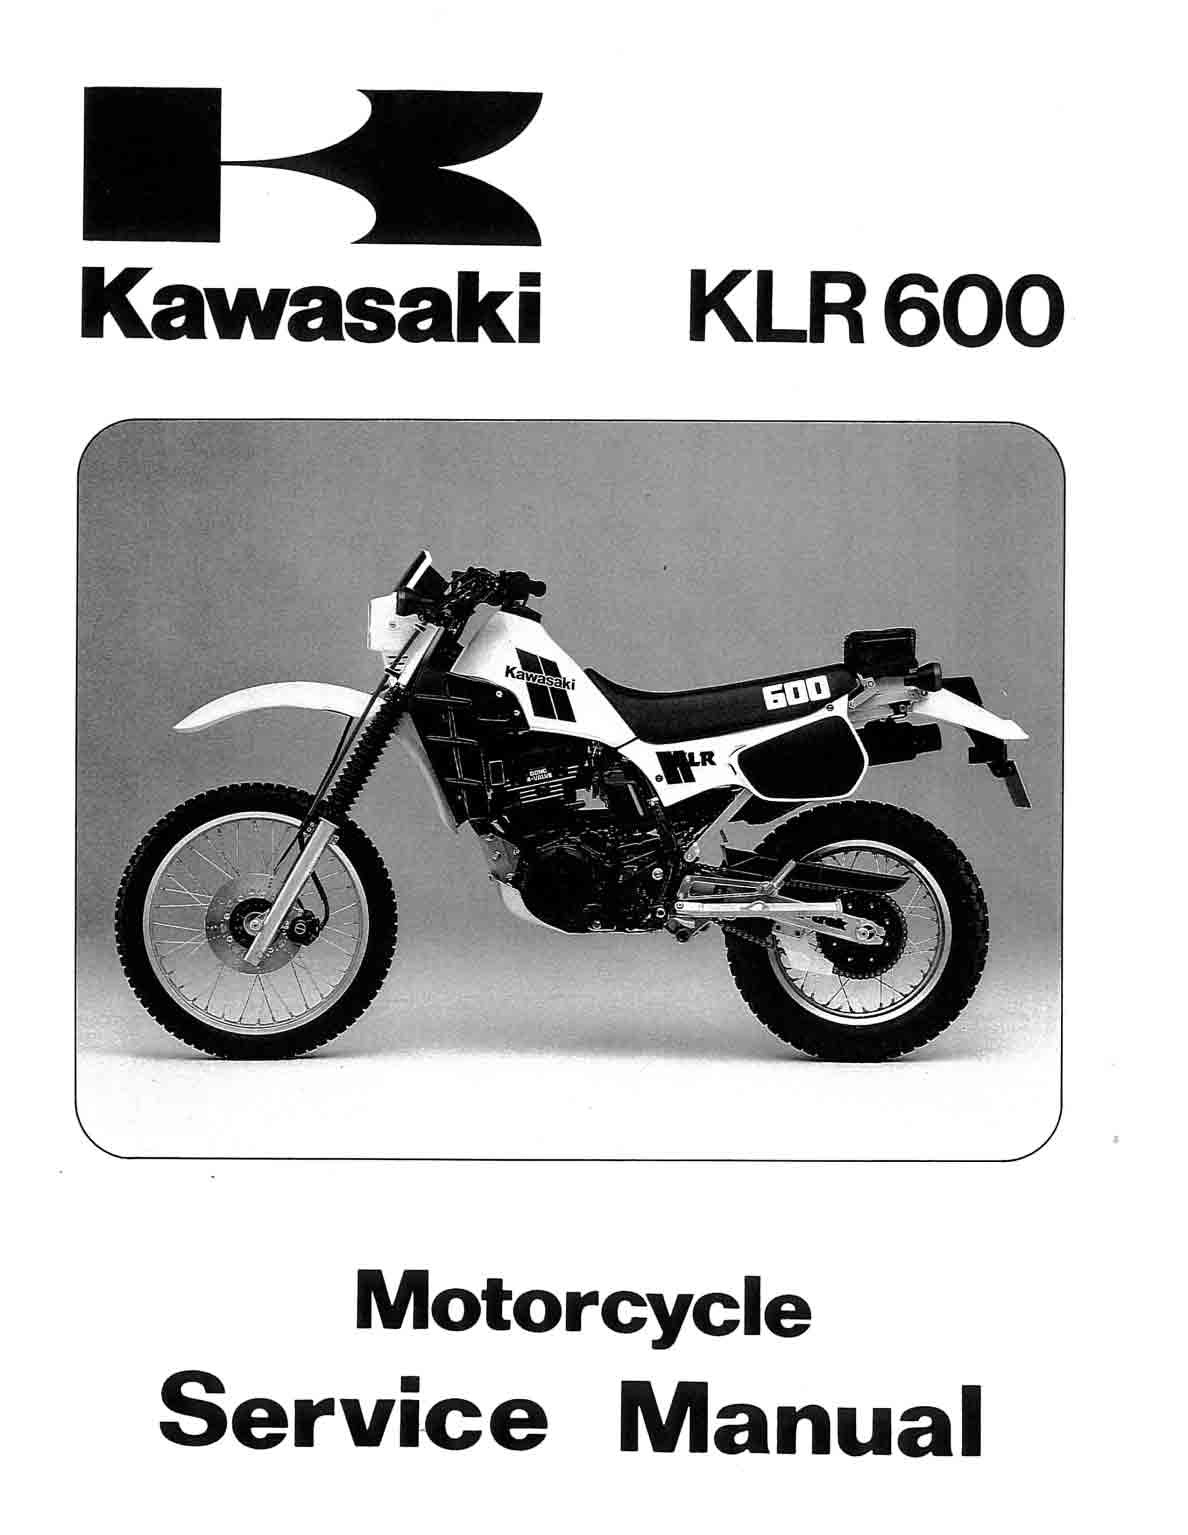 ... 1996 1997 1998 1999 Kawasaki KLR650 KLR 650 Shop Service Repair Manual  KL650 CD